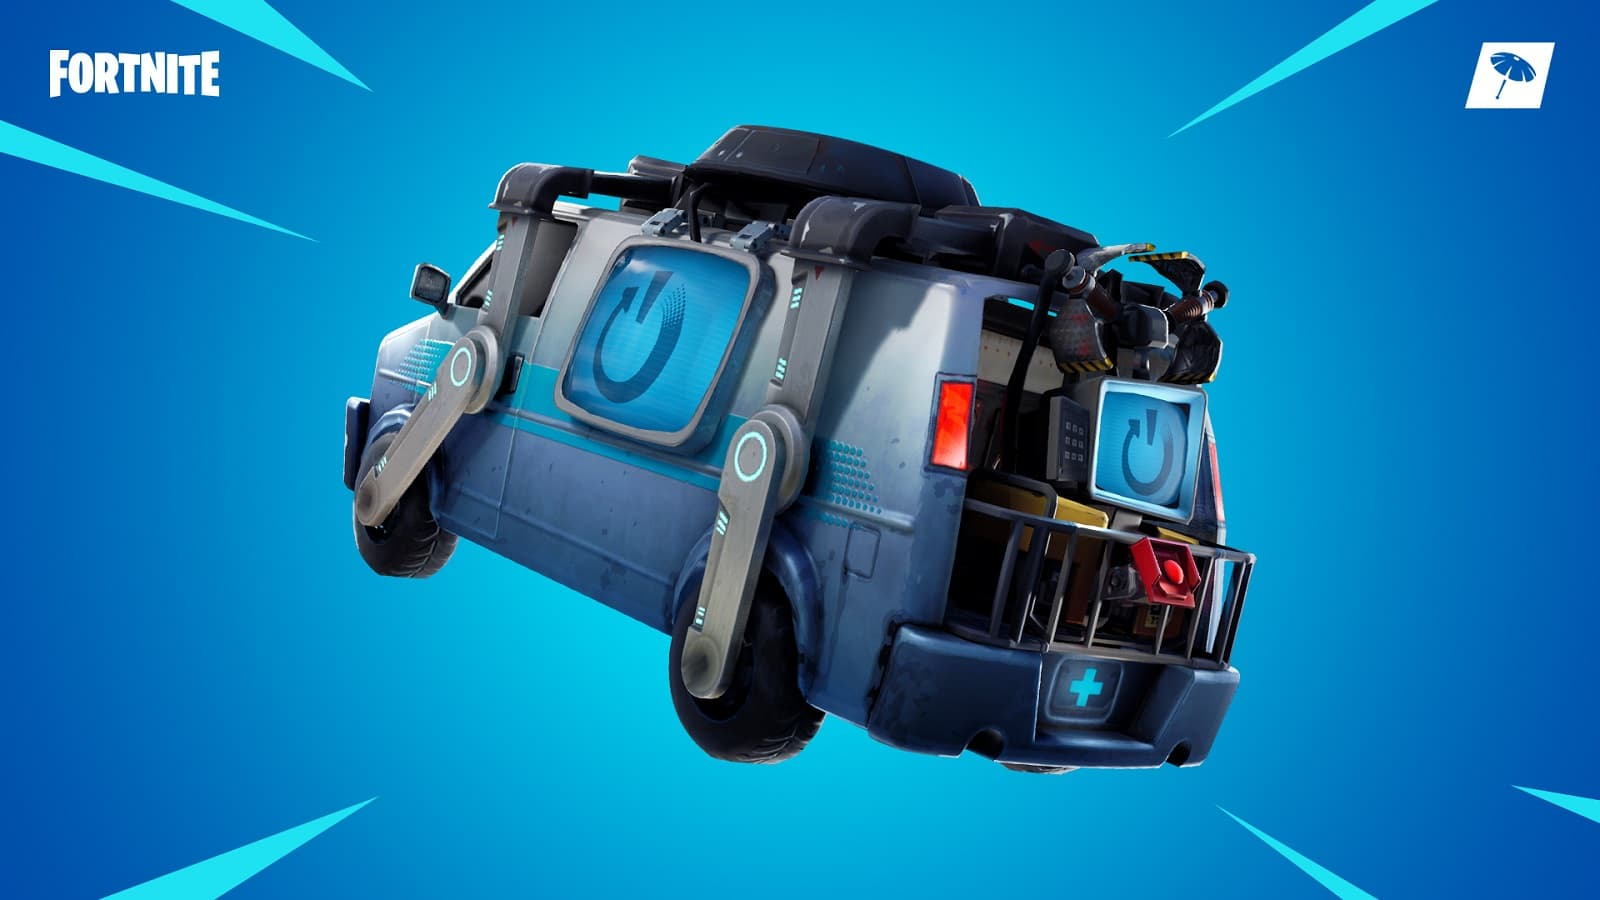 fortnite adds a new respawn feature with reboot vans